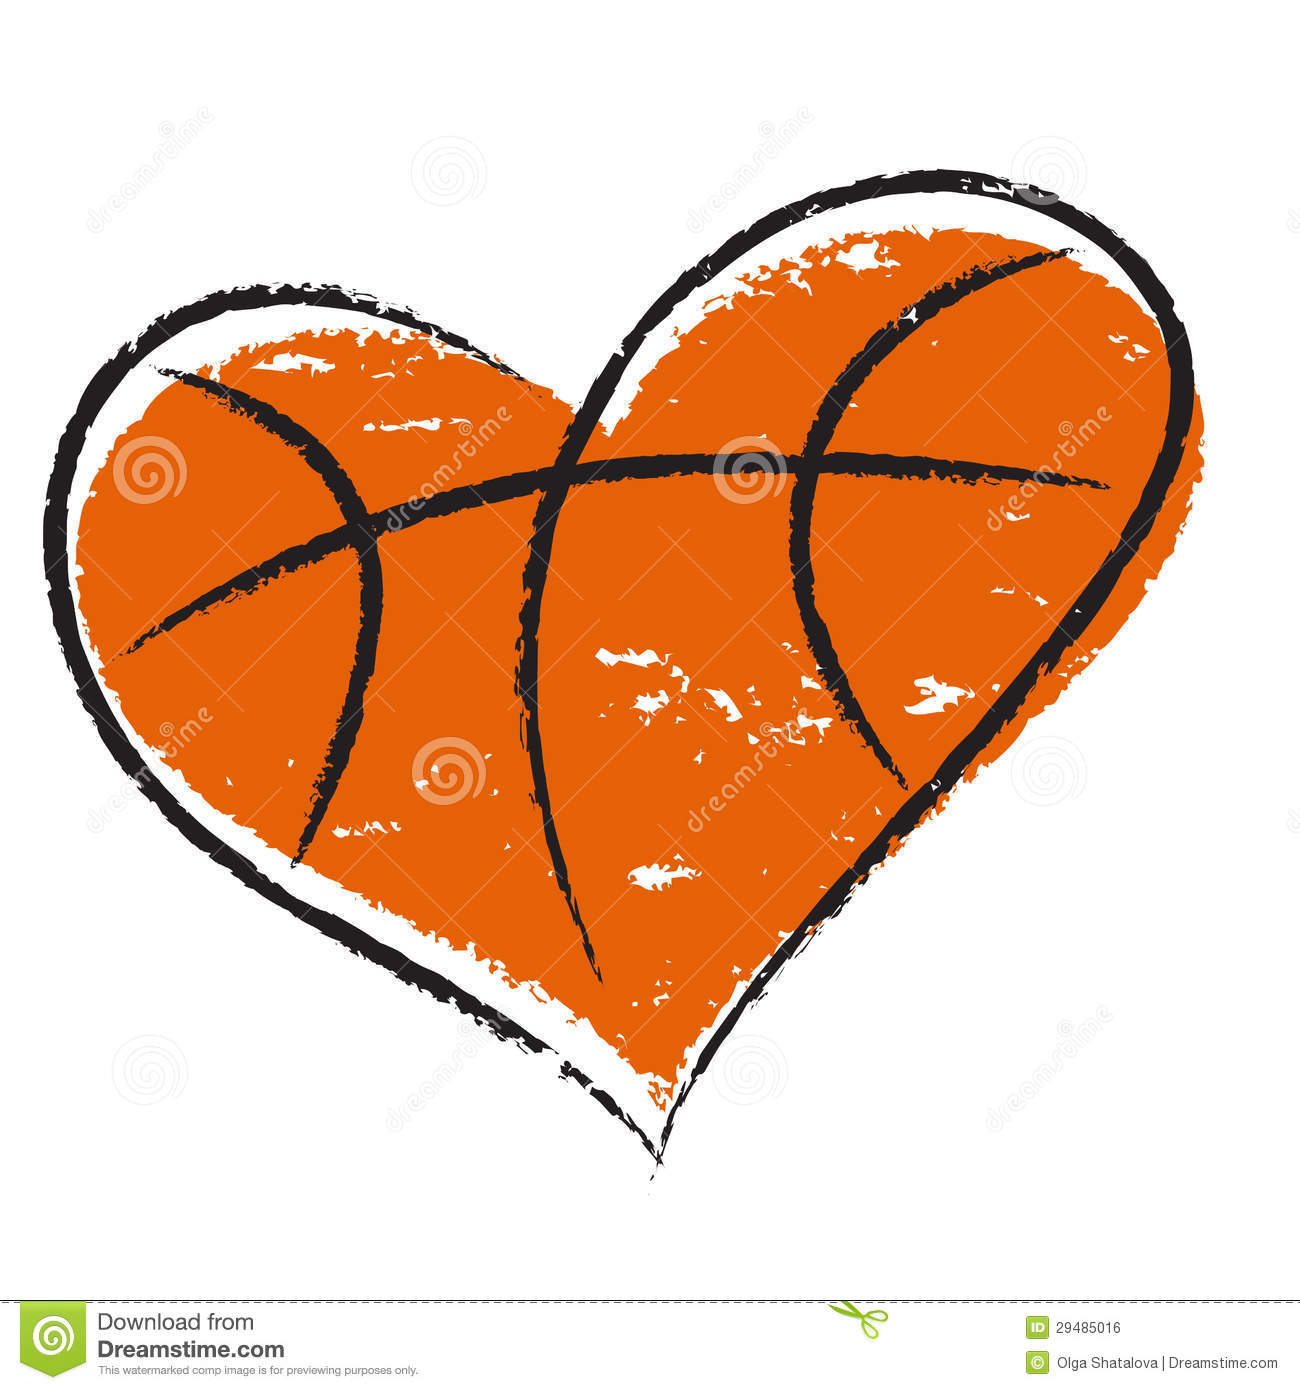 Basketball Heart Isolated On White Background For Sports Design